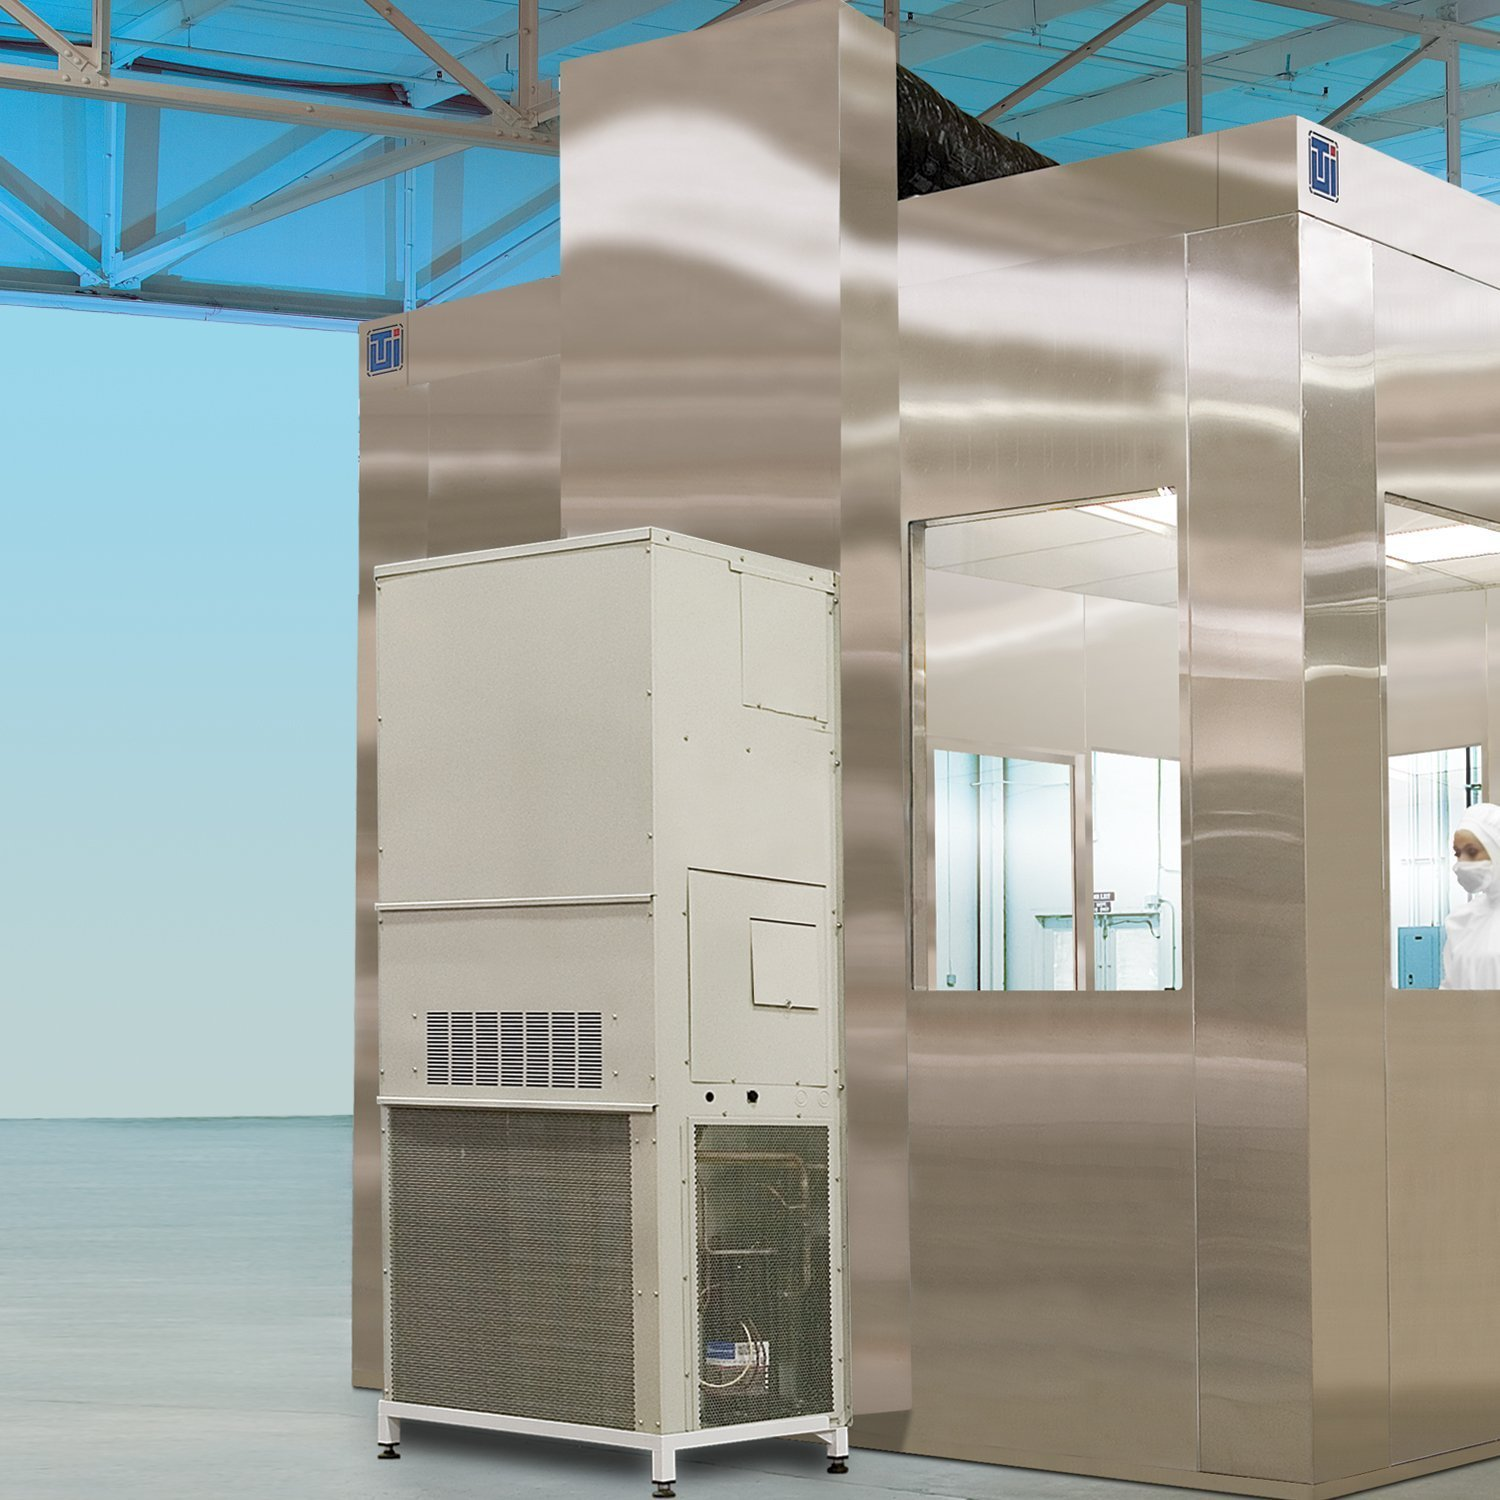 Modular Cleanrooms from Terra Universal